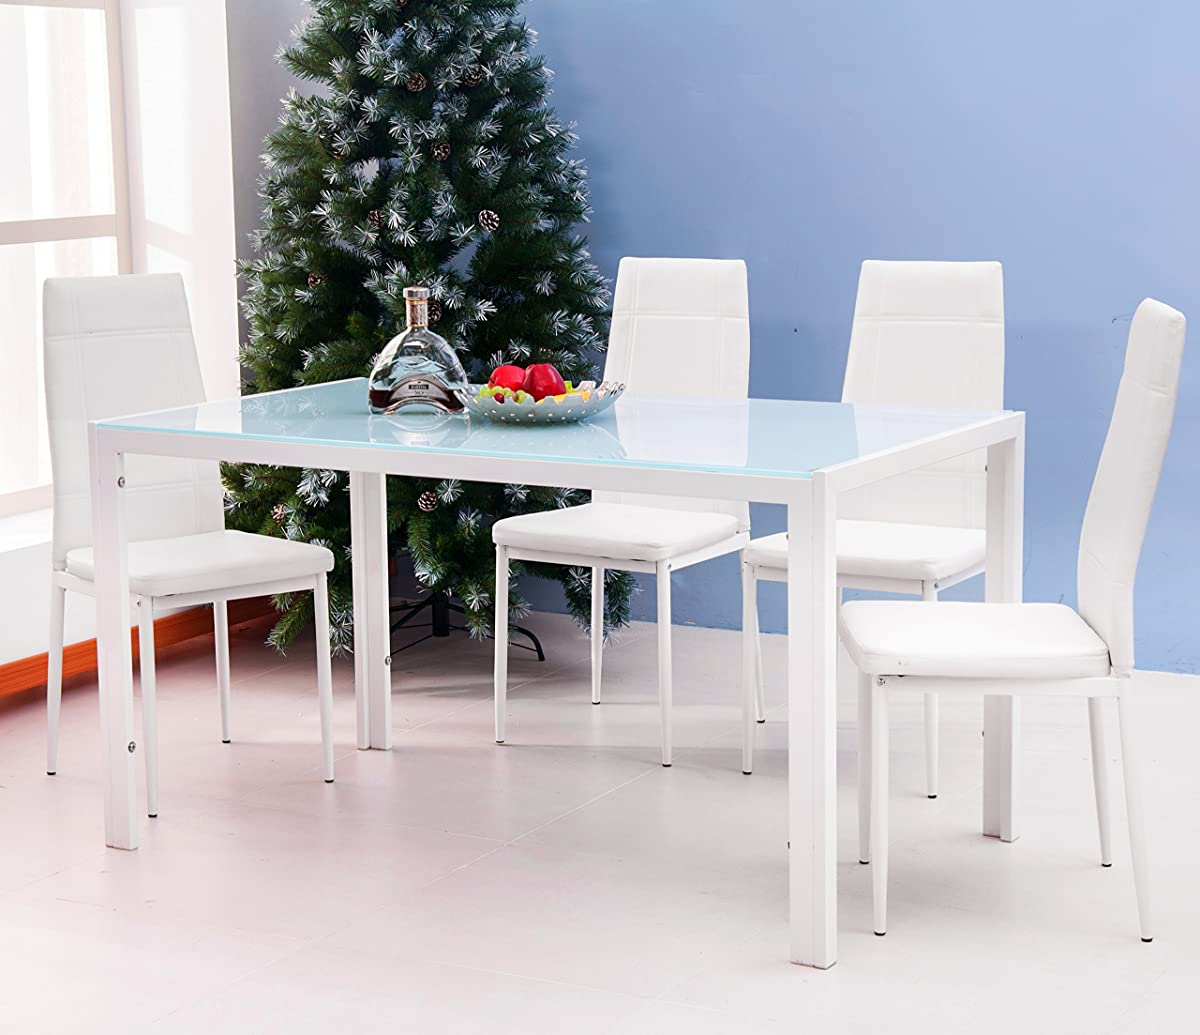 Modern 5pc Dining Table Set Kitchen Dinette Chairs: Merax 5PC Glass Top Dining Set 4 Person Dining Table And